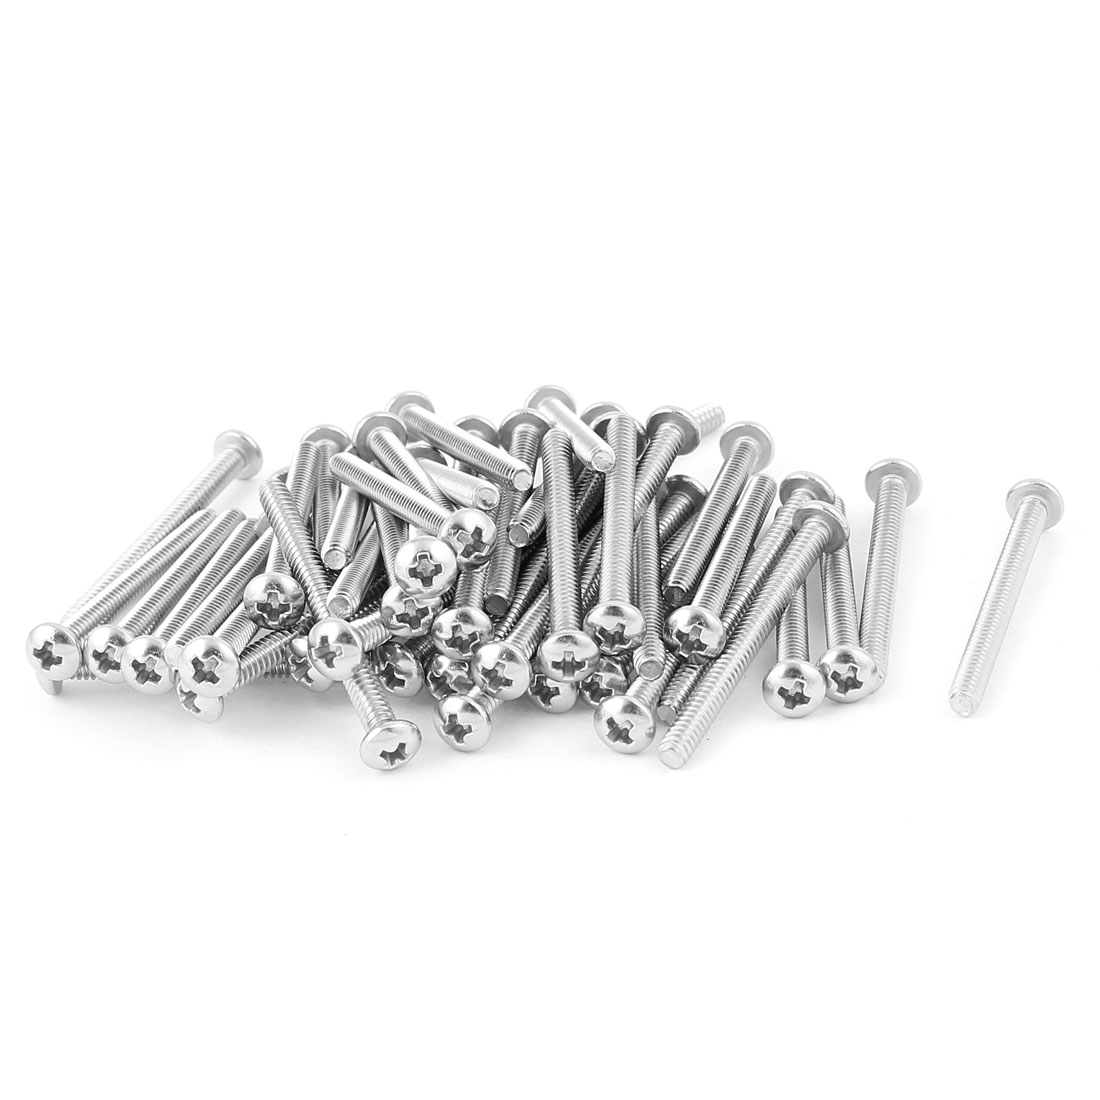 "50 Pcs #4-40 x 1 1/4"" Stainless Steel Truss Head Bolts Phillips Machine Screws"